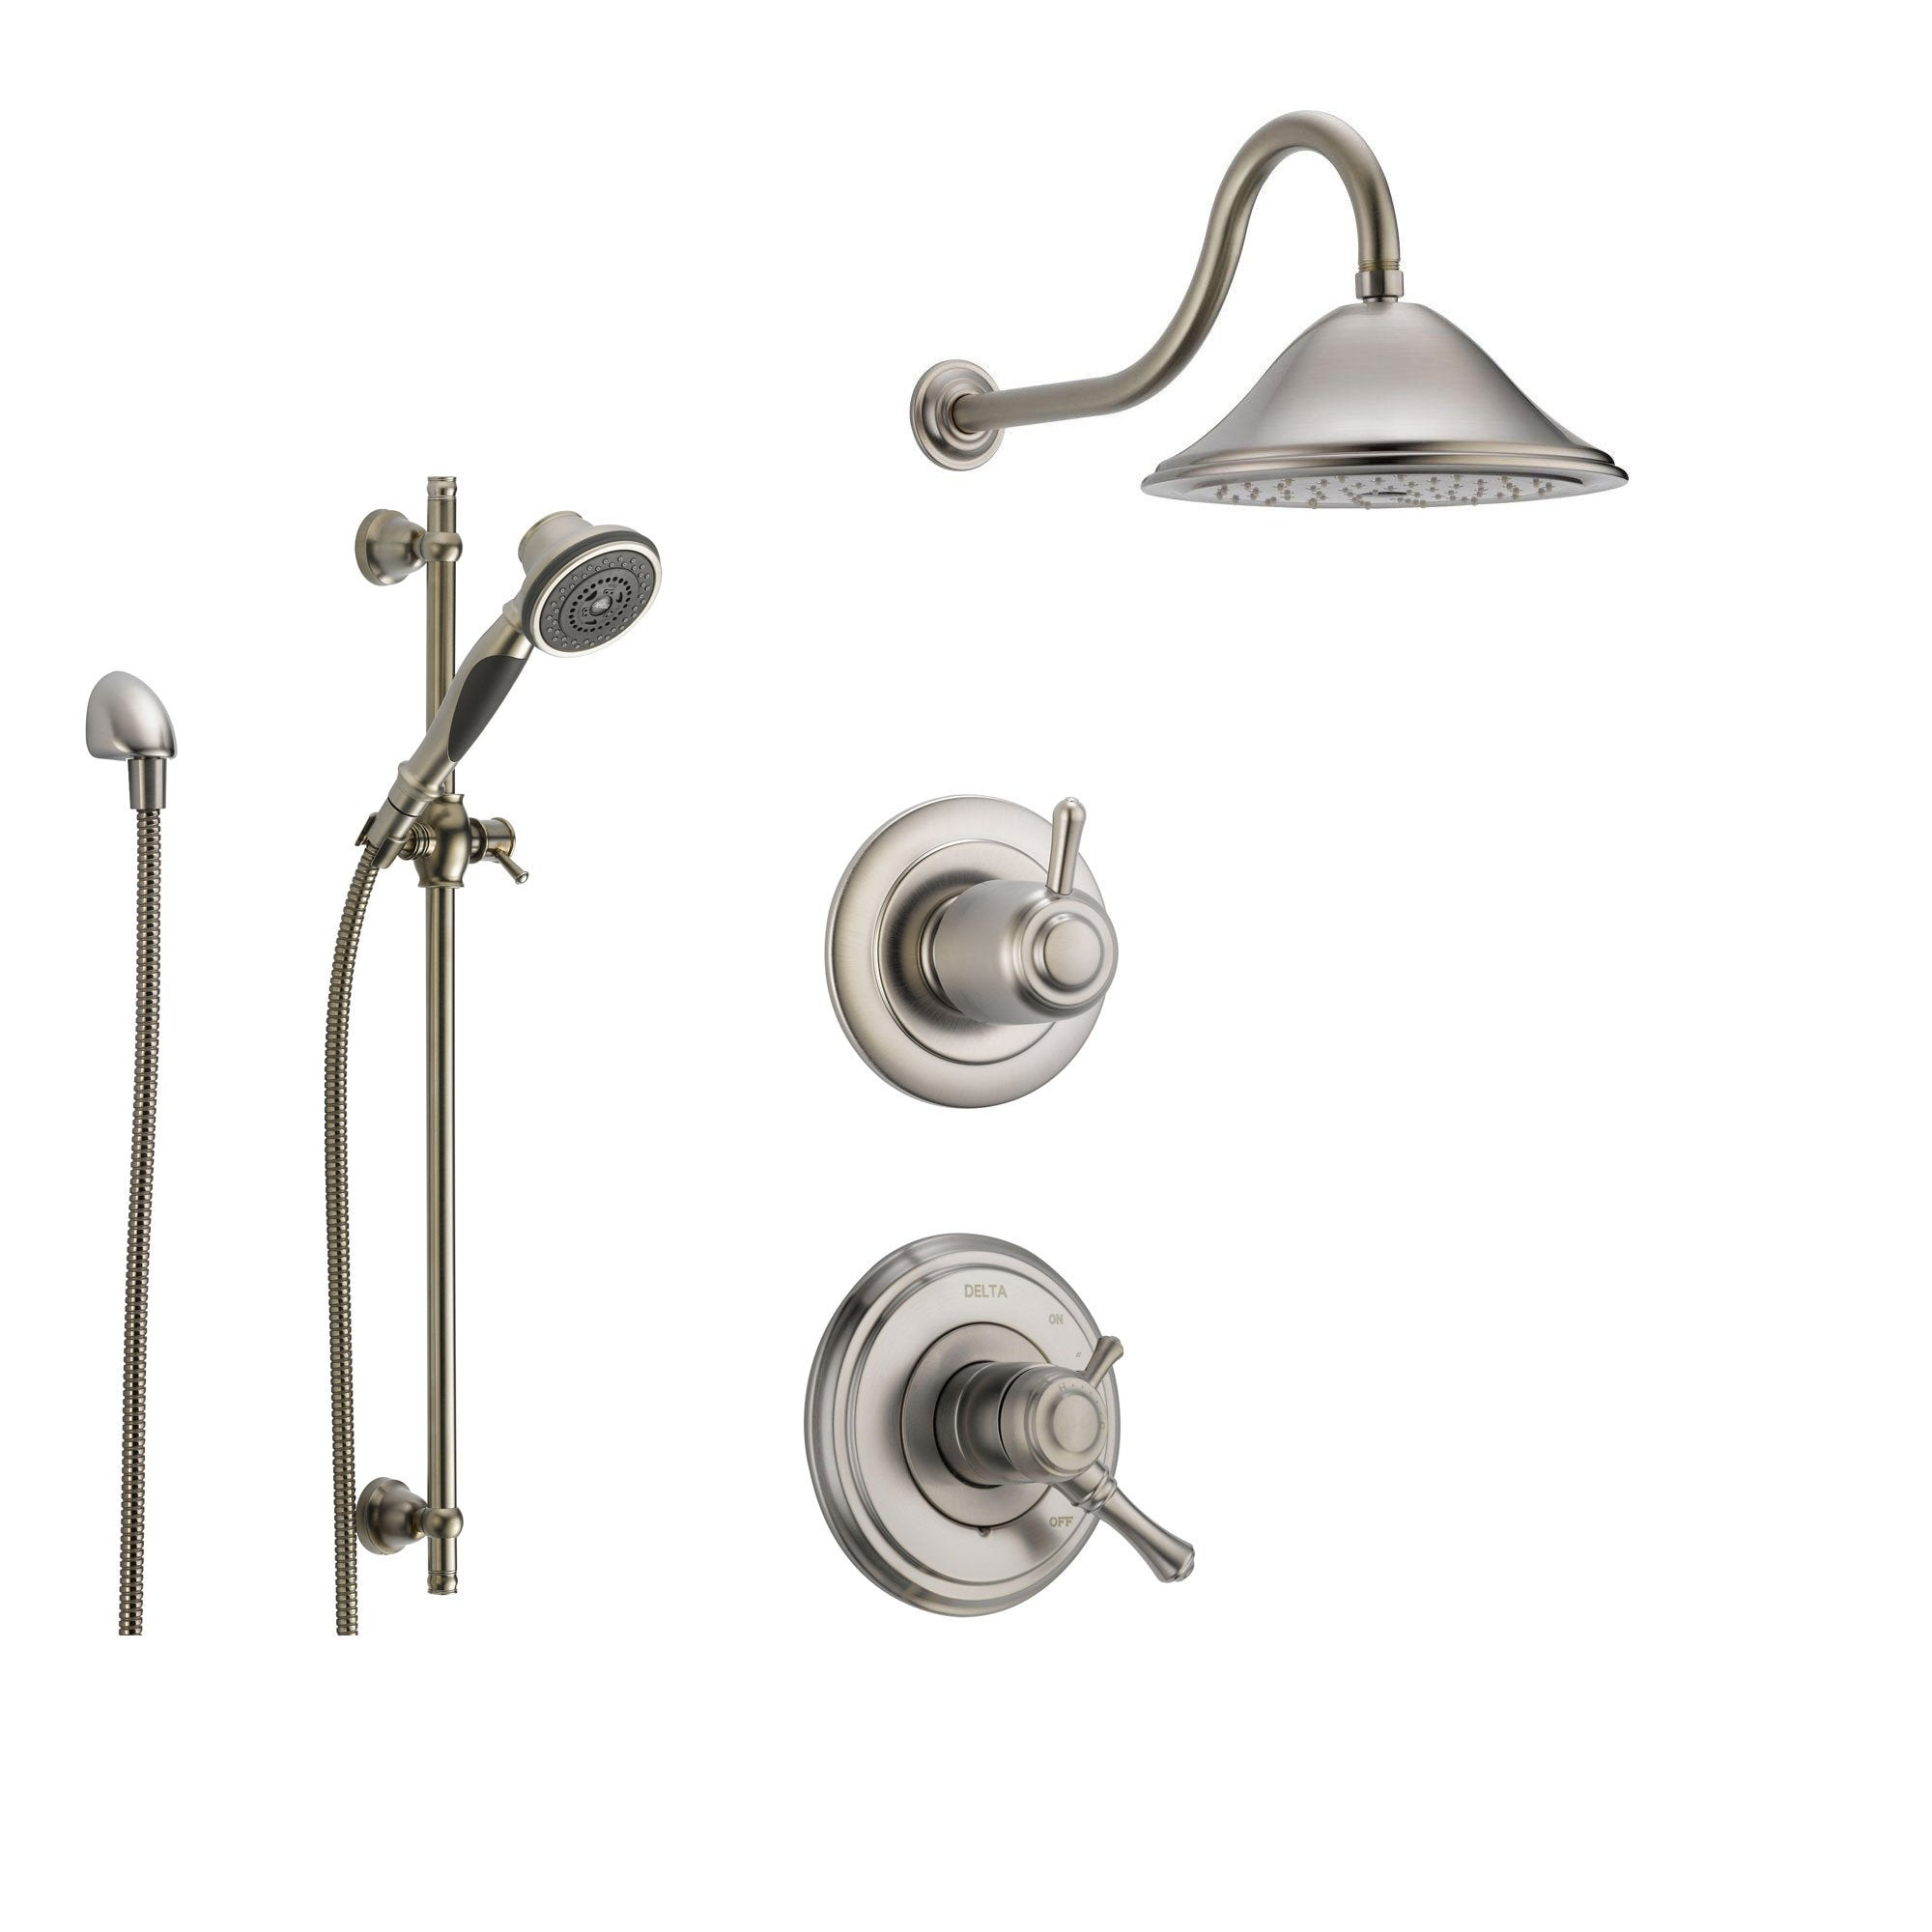 Delta Cassidy Stainless Steel Shower System with Dual Control Shower Handle, 3-setting Diverter, Large Rain Showerhead, and Handheld Shower SS179782SS